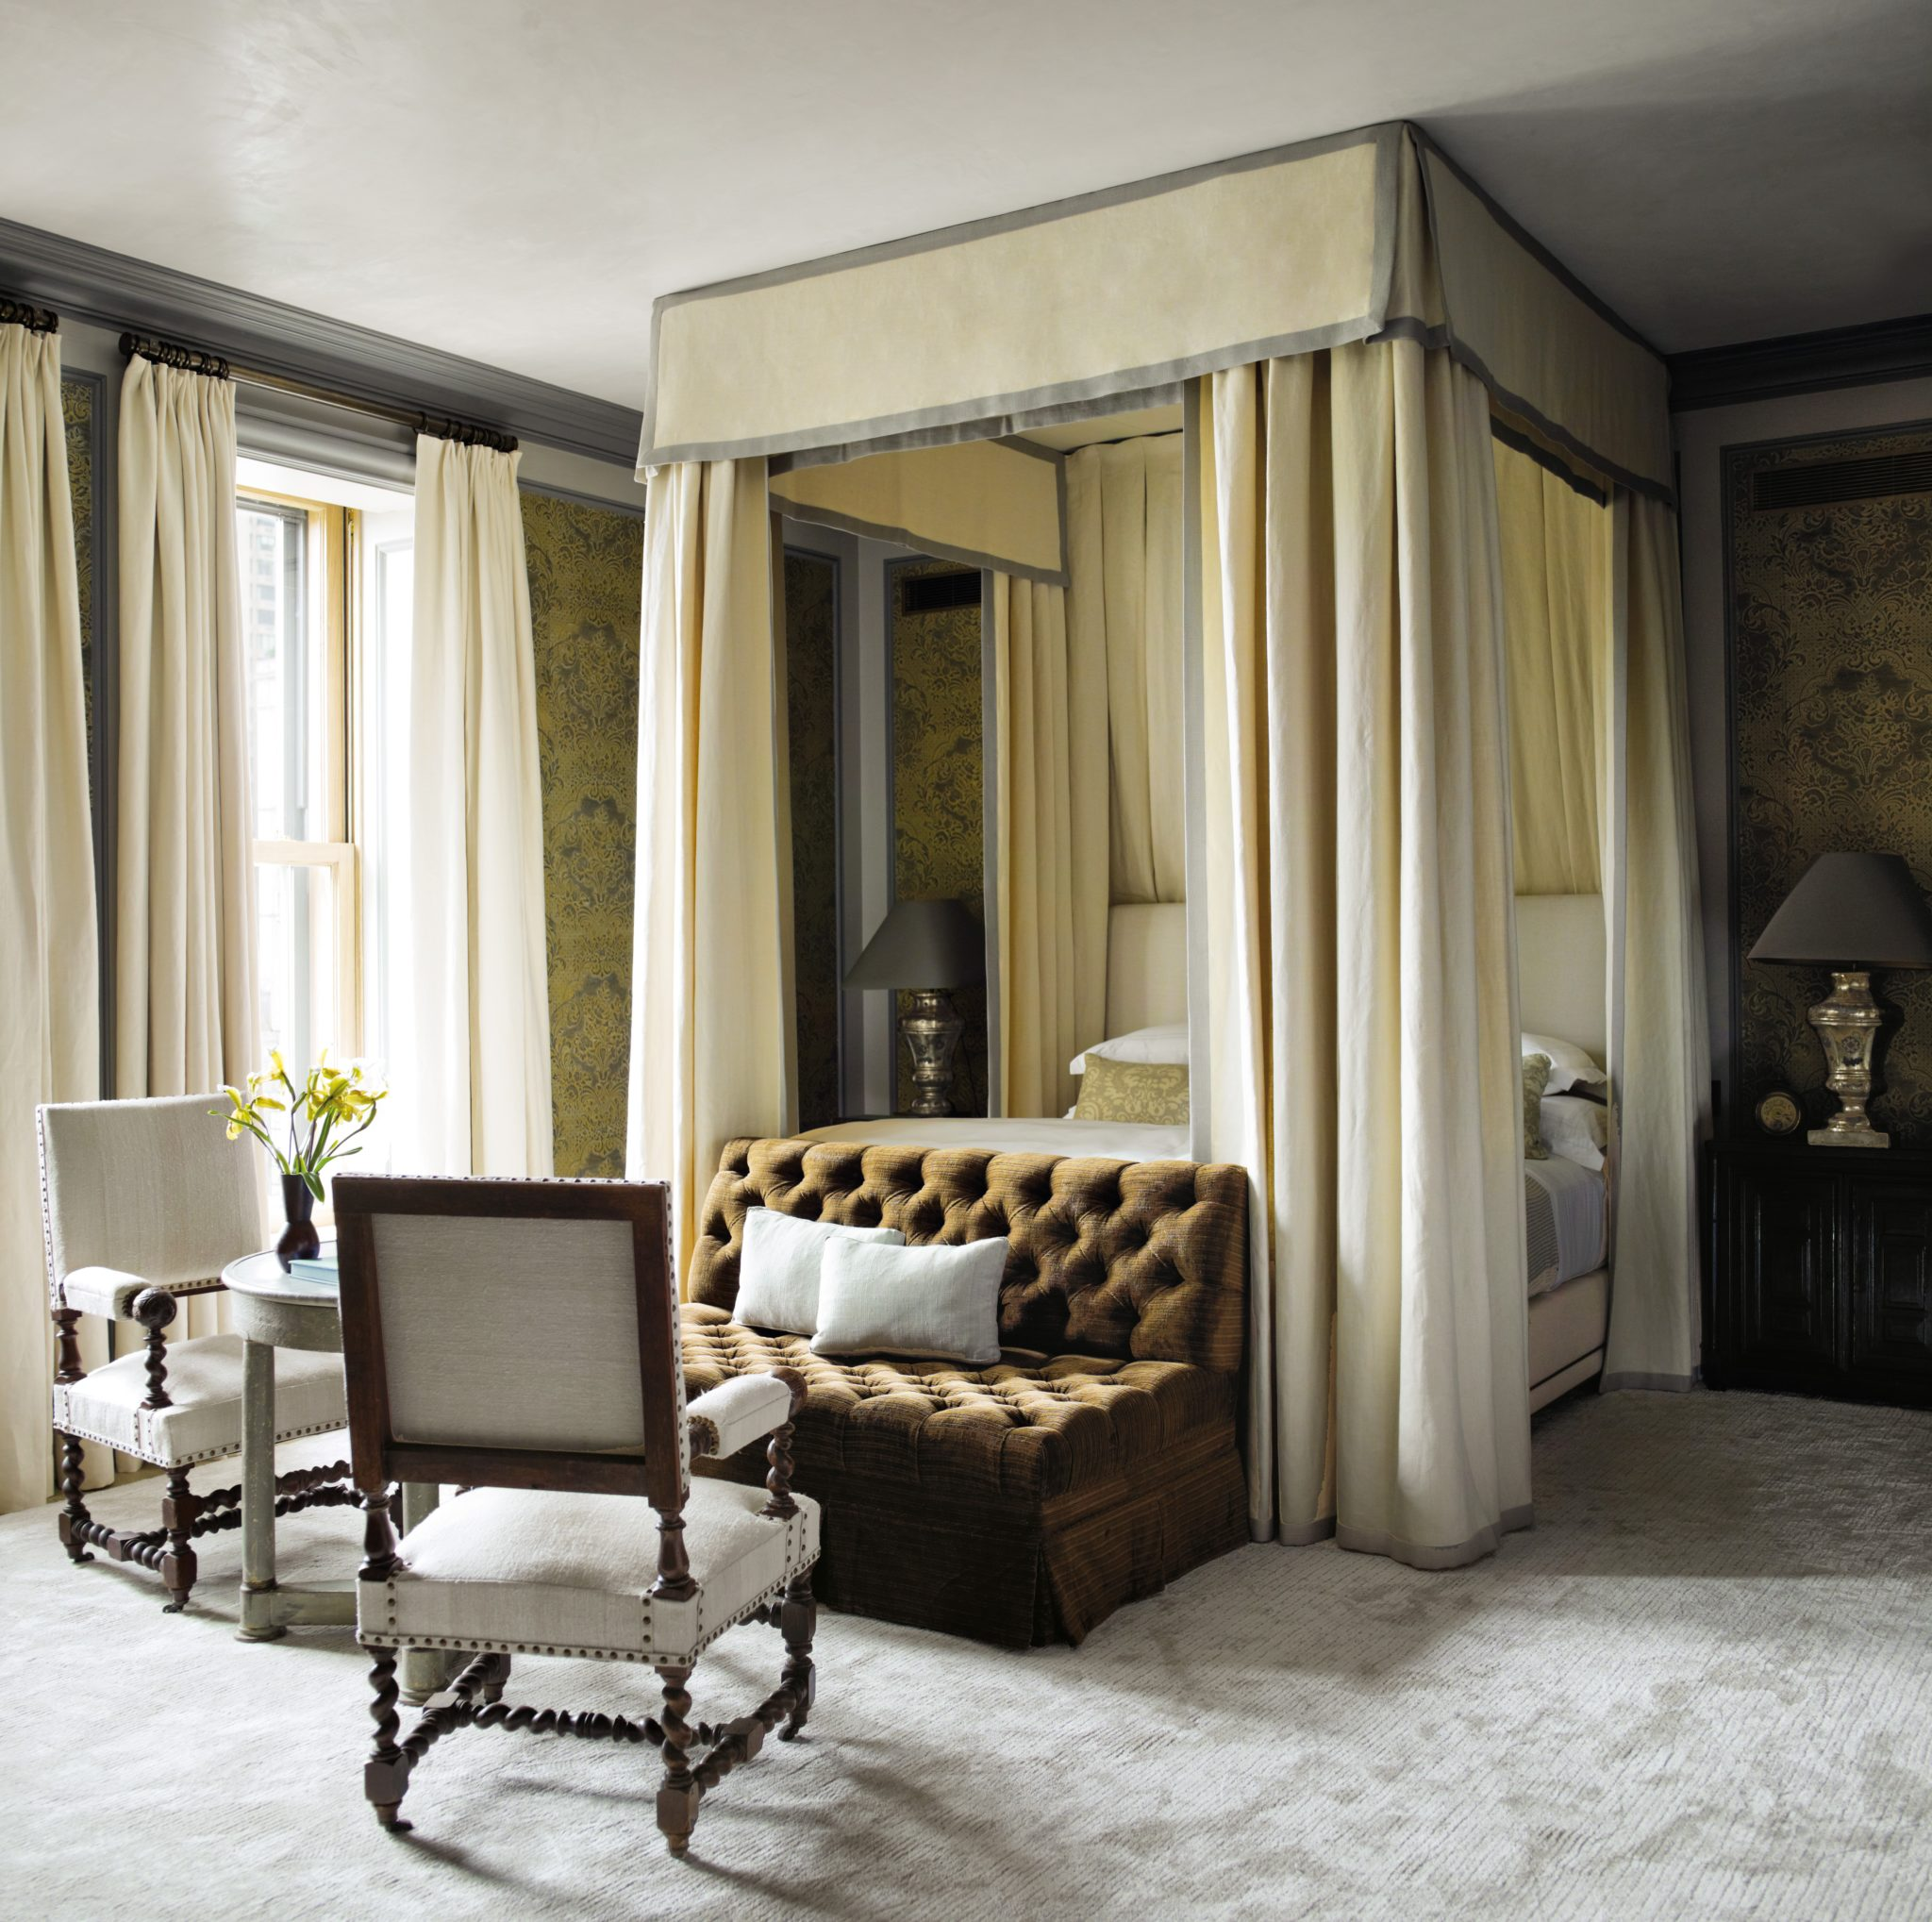 In his redesign of an apartment in the famed Plaza Hotel on Fifth Avenue, Gambrel wantedto suggest rooms frozen in time,so every surface was artfully distressed to suggest years of use and the softness that comes from decades of exposure to sunlight and layers of wax.A curtained bed inthe master bedroom has a luxe, old-world feel,but the use of heavy Belgian linen keeps it young and modern.